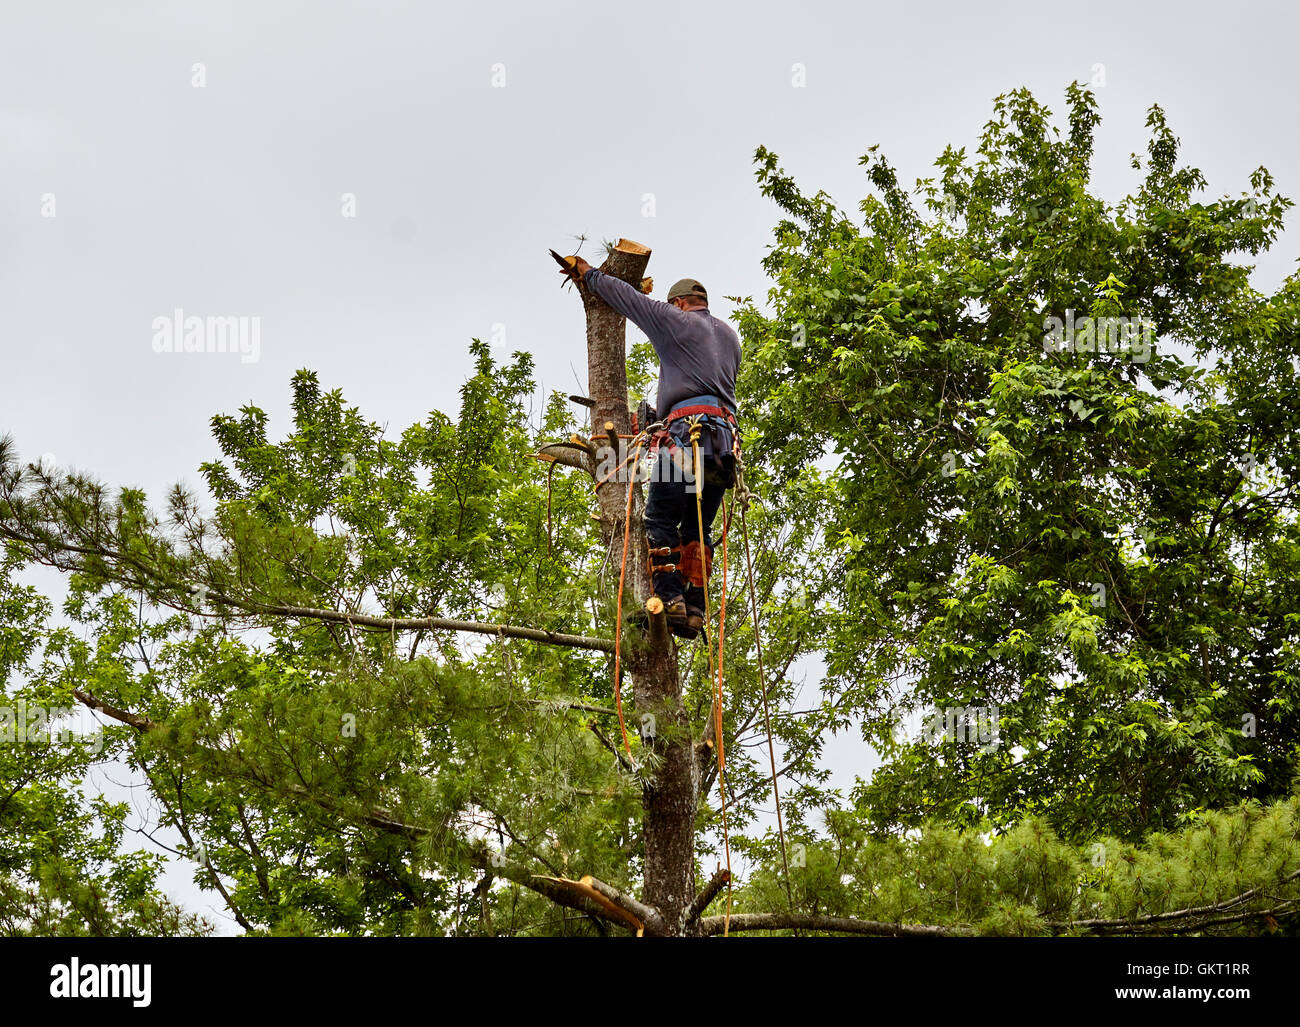 Professional Tree trimmer cutting the top of a tree trunk with a chain saw - Stock Image